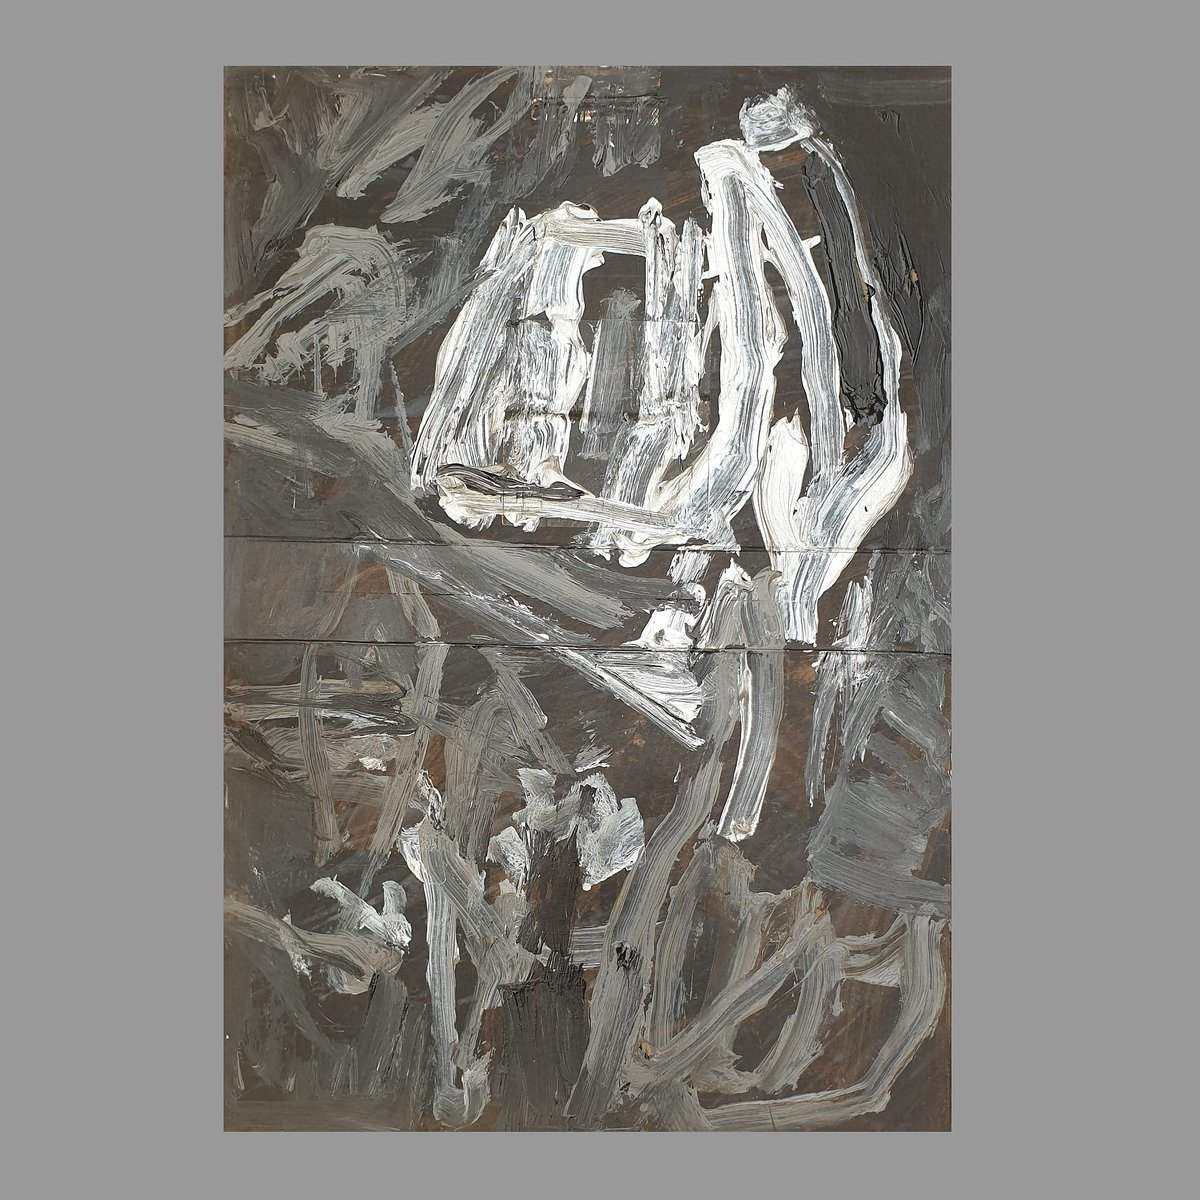 Silver Linings at the time of Virus fear . Stay at Home and be safe..#canvas #abstractpaintings #abstractexpressionism #abstractexpressionist #instaartoftheday #instaabstract #minimal #indianartist #modernart #Ahmedabad #indianart #ajaychoudhary #originalartworkforsale #artbuyerpic.twitter.com/ha7kKMoWTx